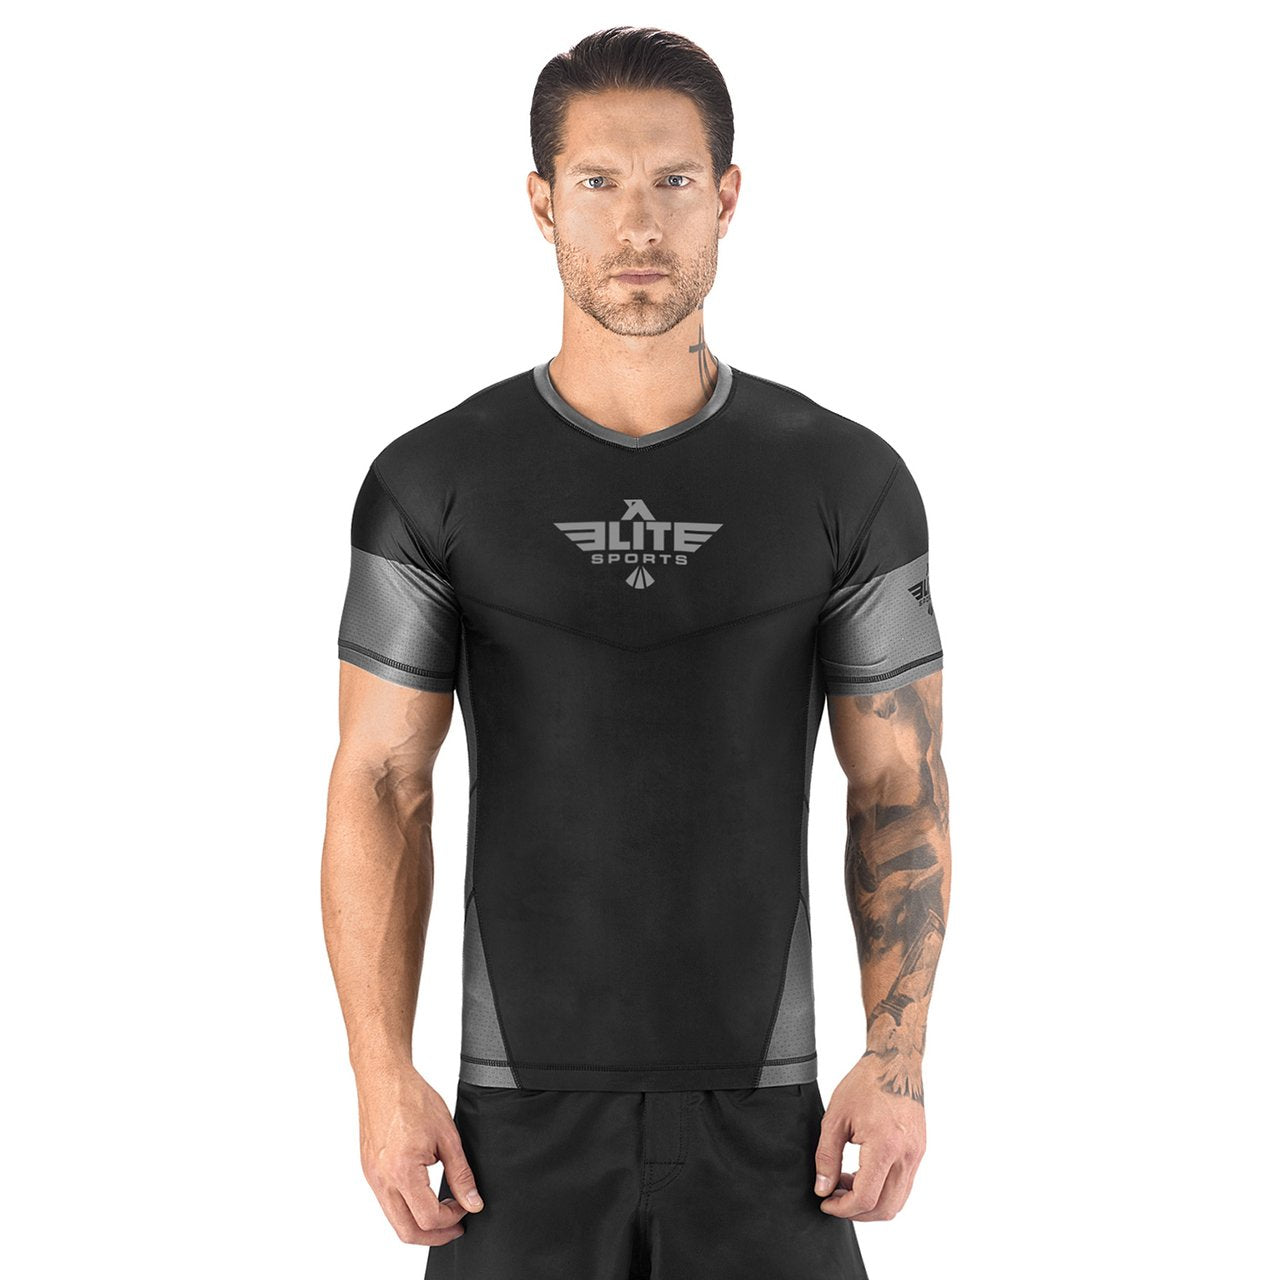 Load image into Gallery viewer, Elite Sports Honey Comb Sublimation Black/Gray Short Sleeve Rash Guard